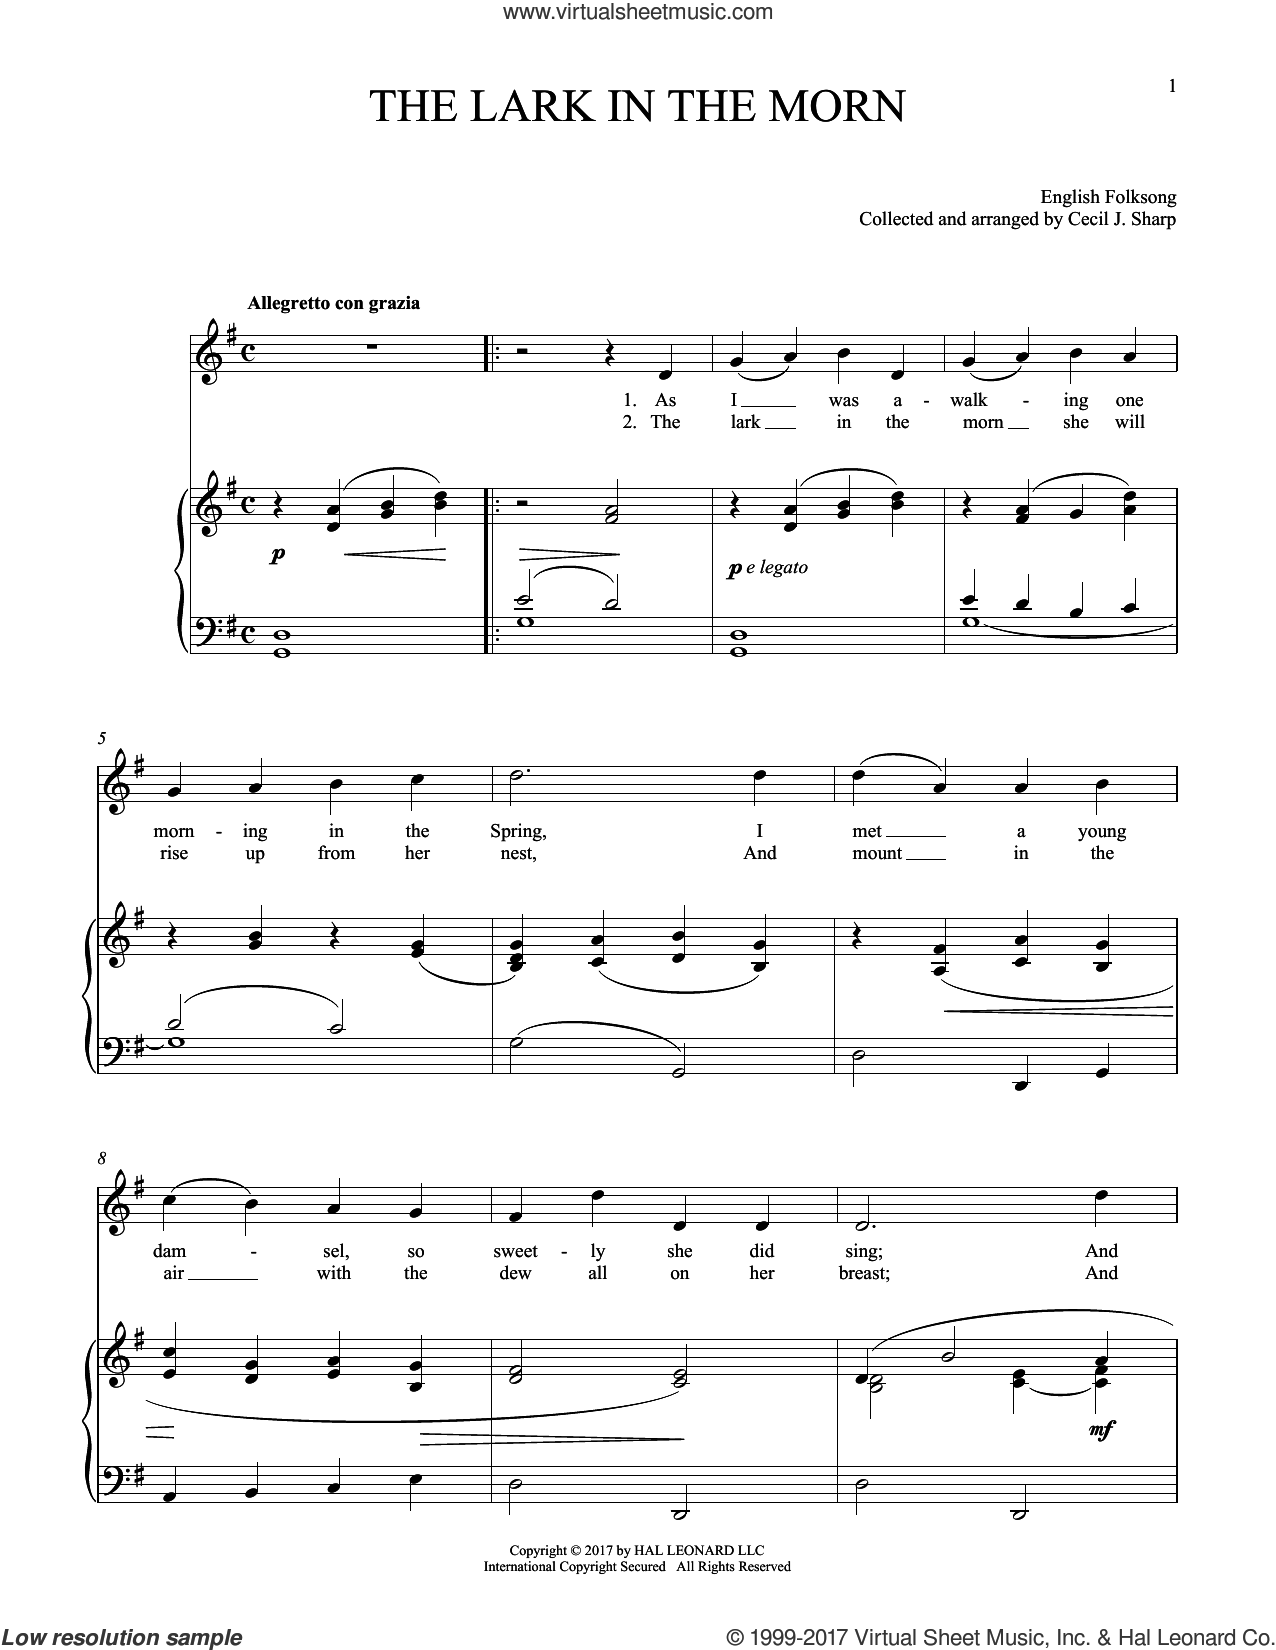 Lark In The Morning sheet music for voice and piano, intermediate skill level